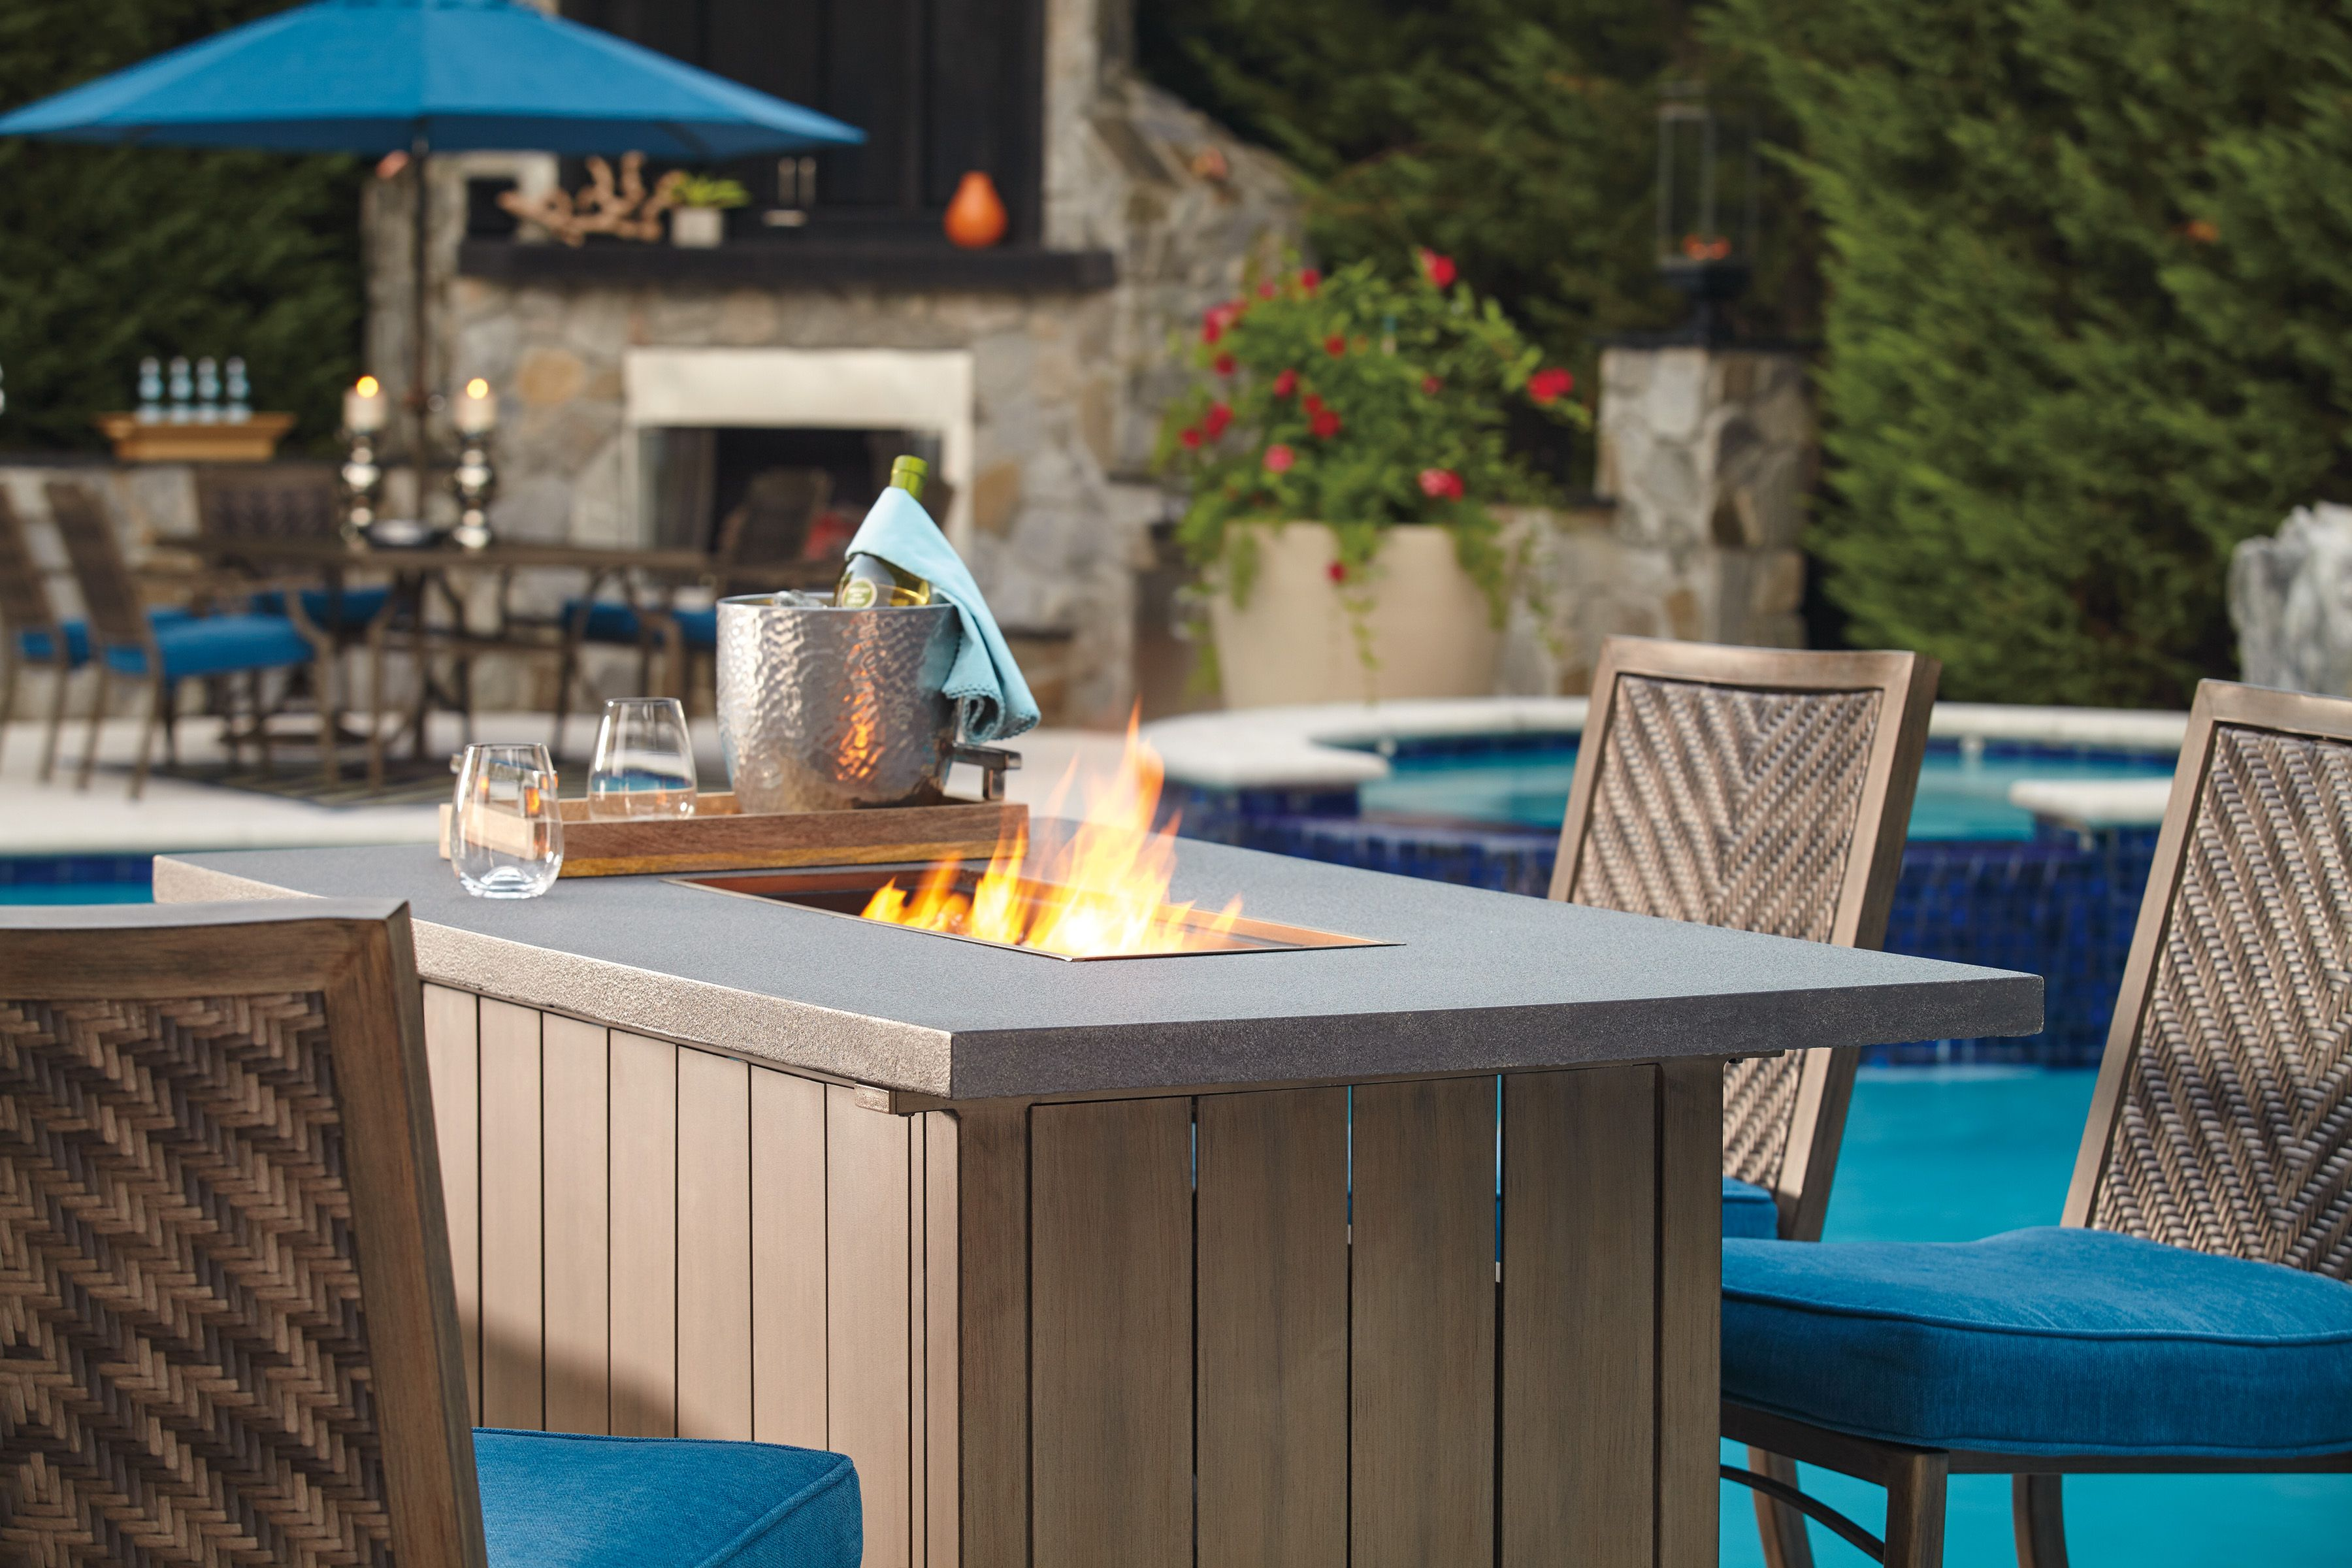 Swell Are You Ready To Be Entertained The Partanna Fire Pit Pub Uwap Interior Chair Design Uwaporg